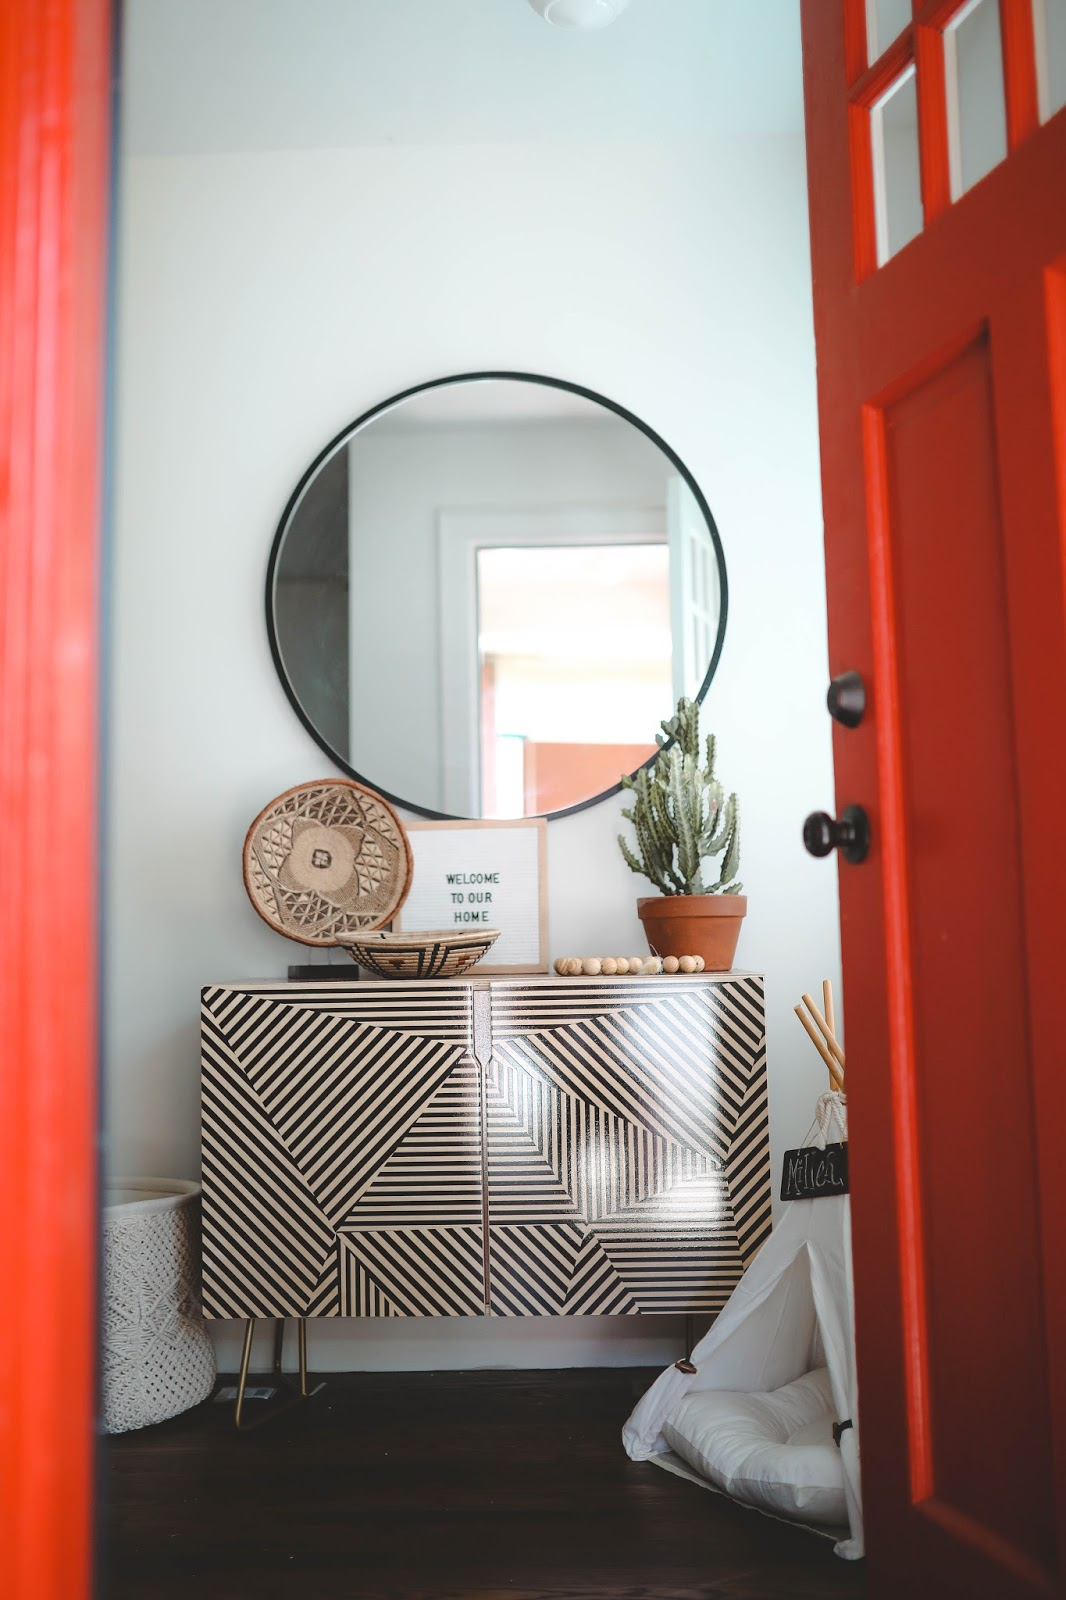 My Interior Design Mood Boards & Designing Our Rooms - Sarah Belle ...